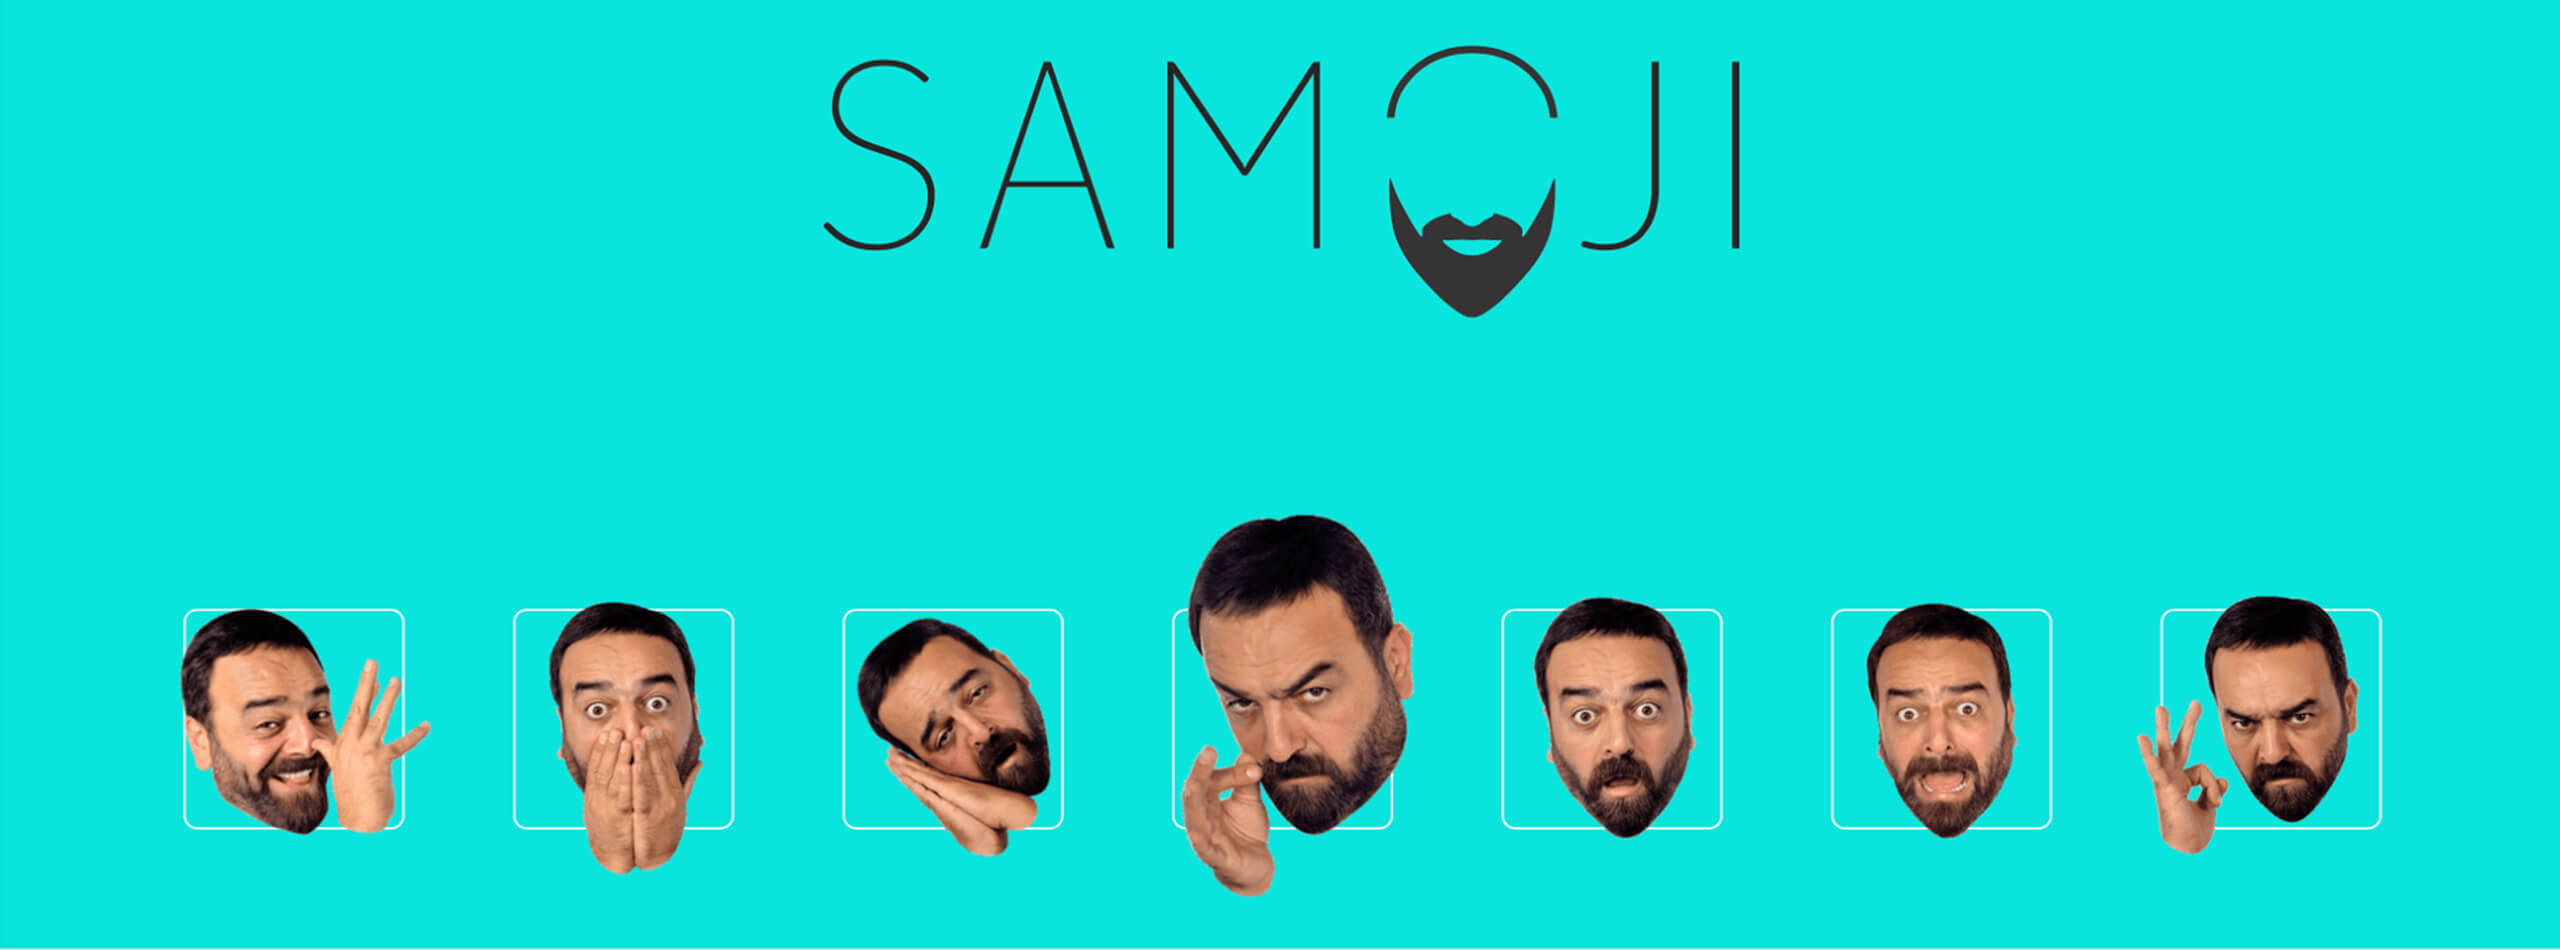 Application with emoji of Samer Al Masri